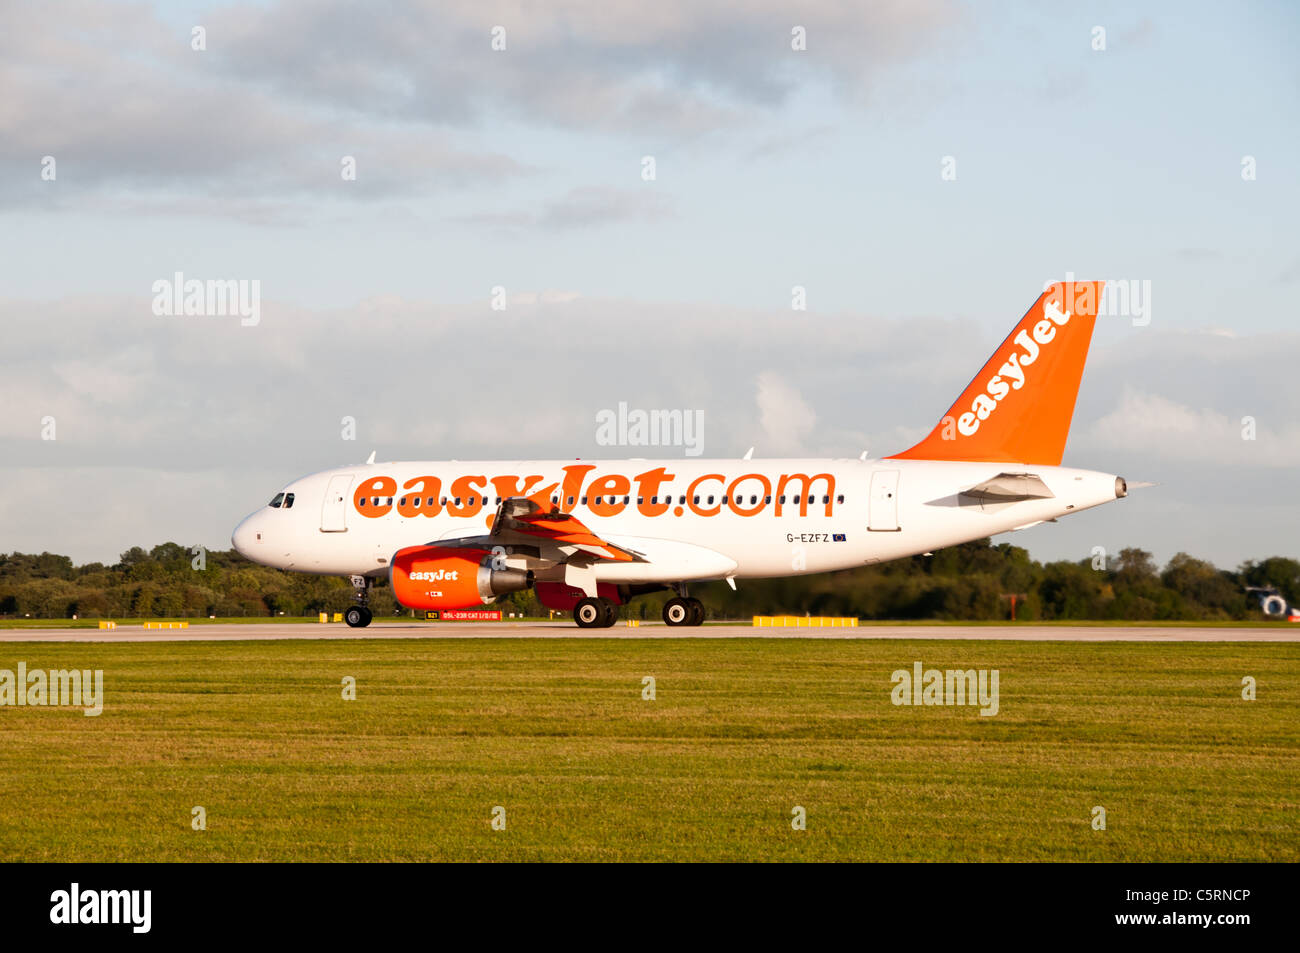 an easyJet airbus A319 on the runway at Manchester airport - Stock Image